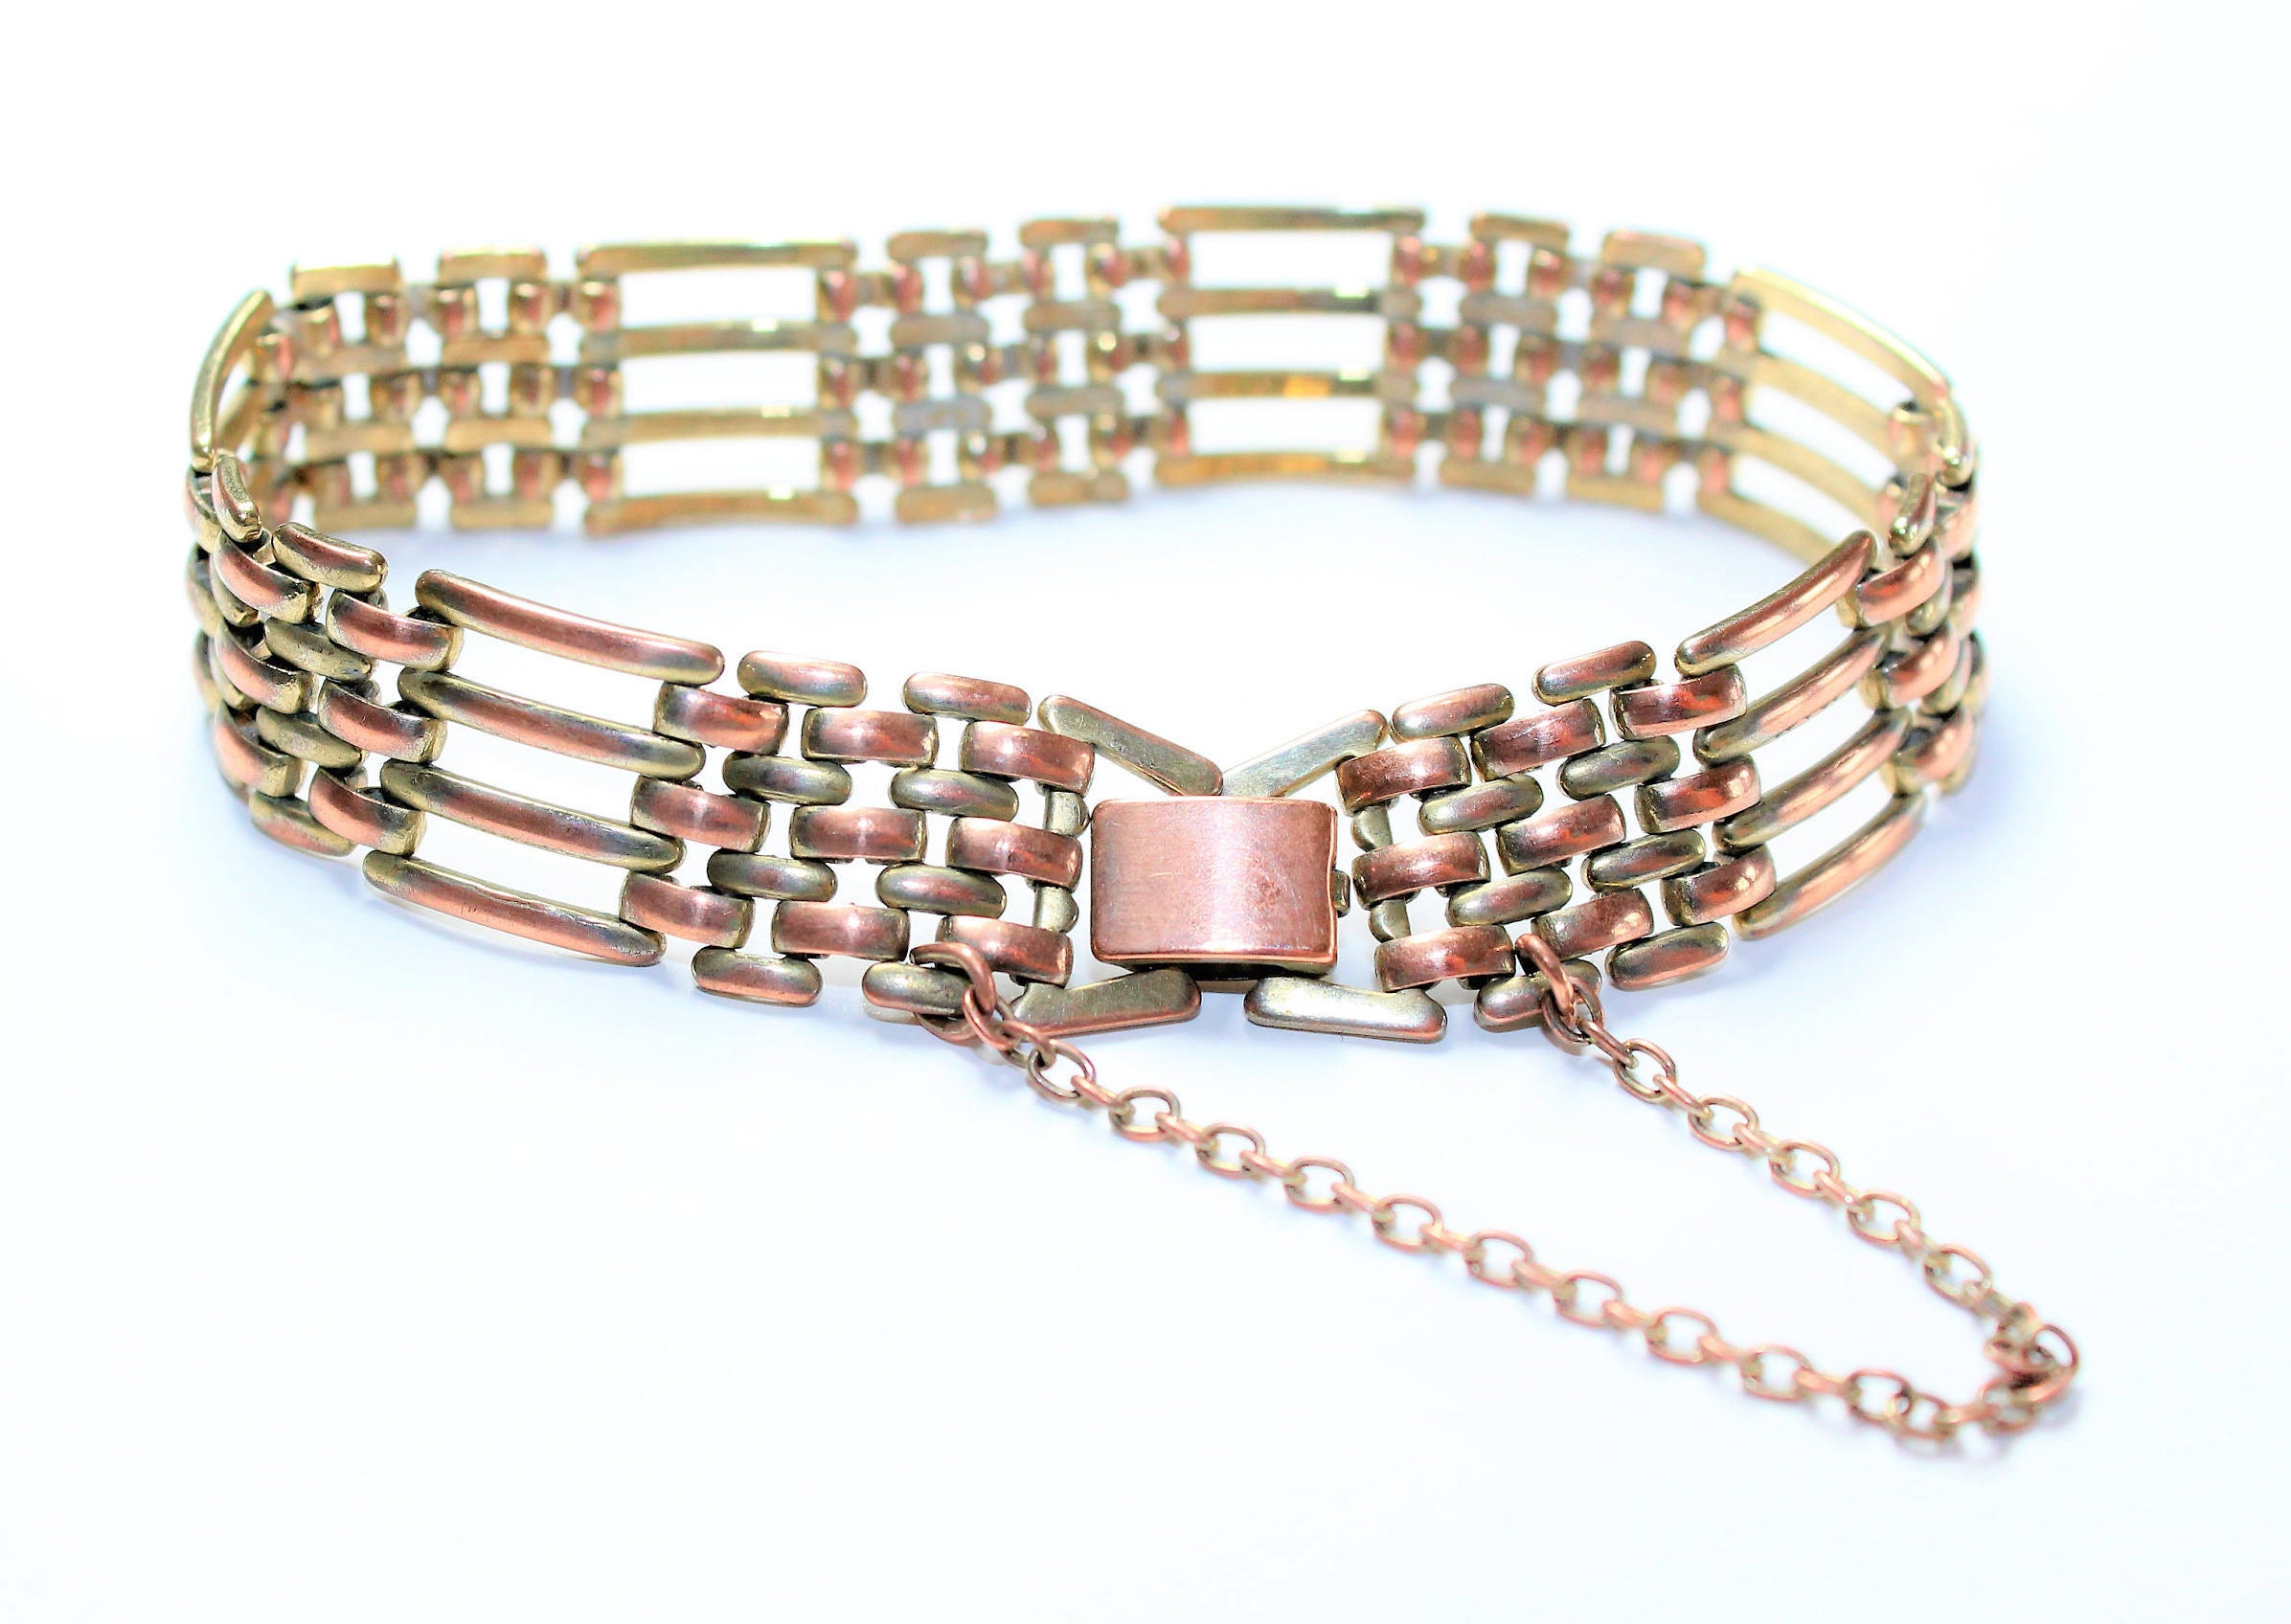 Antique Gold Coloured Copper Bracelet with Safety Chain (c1900s)